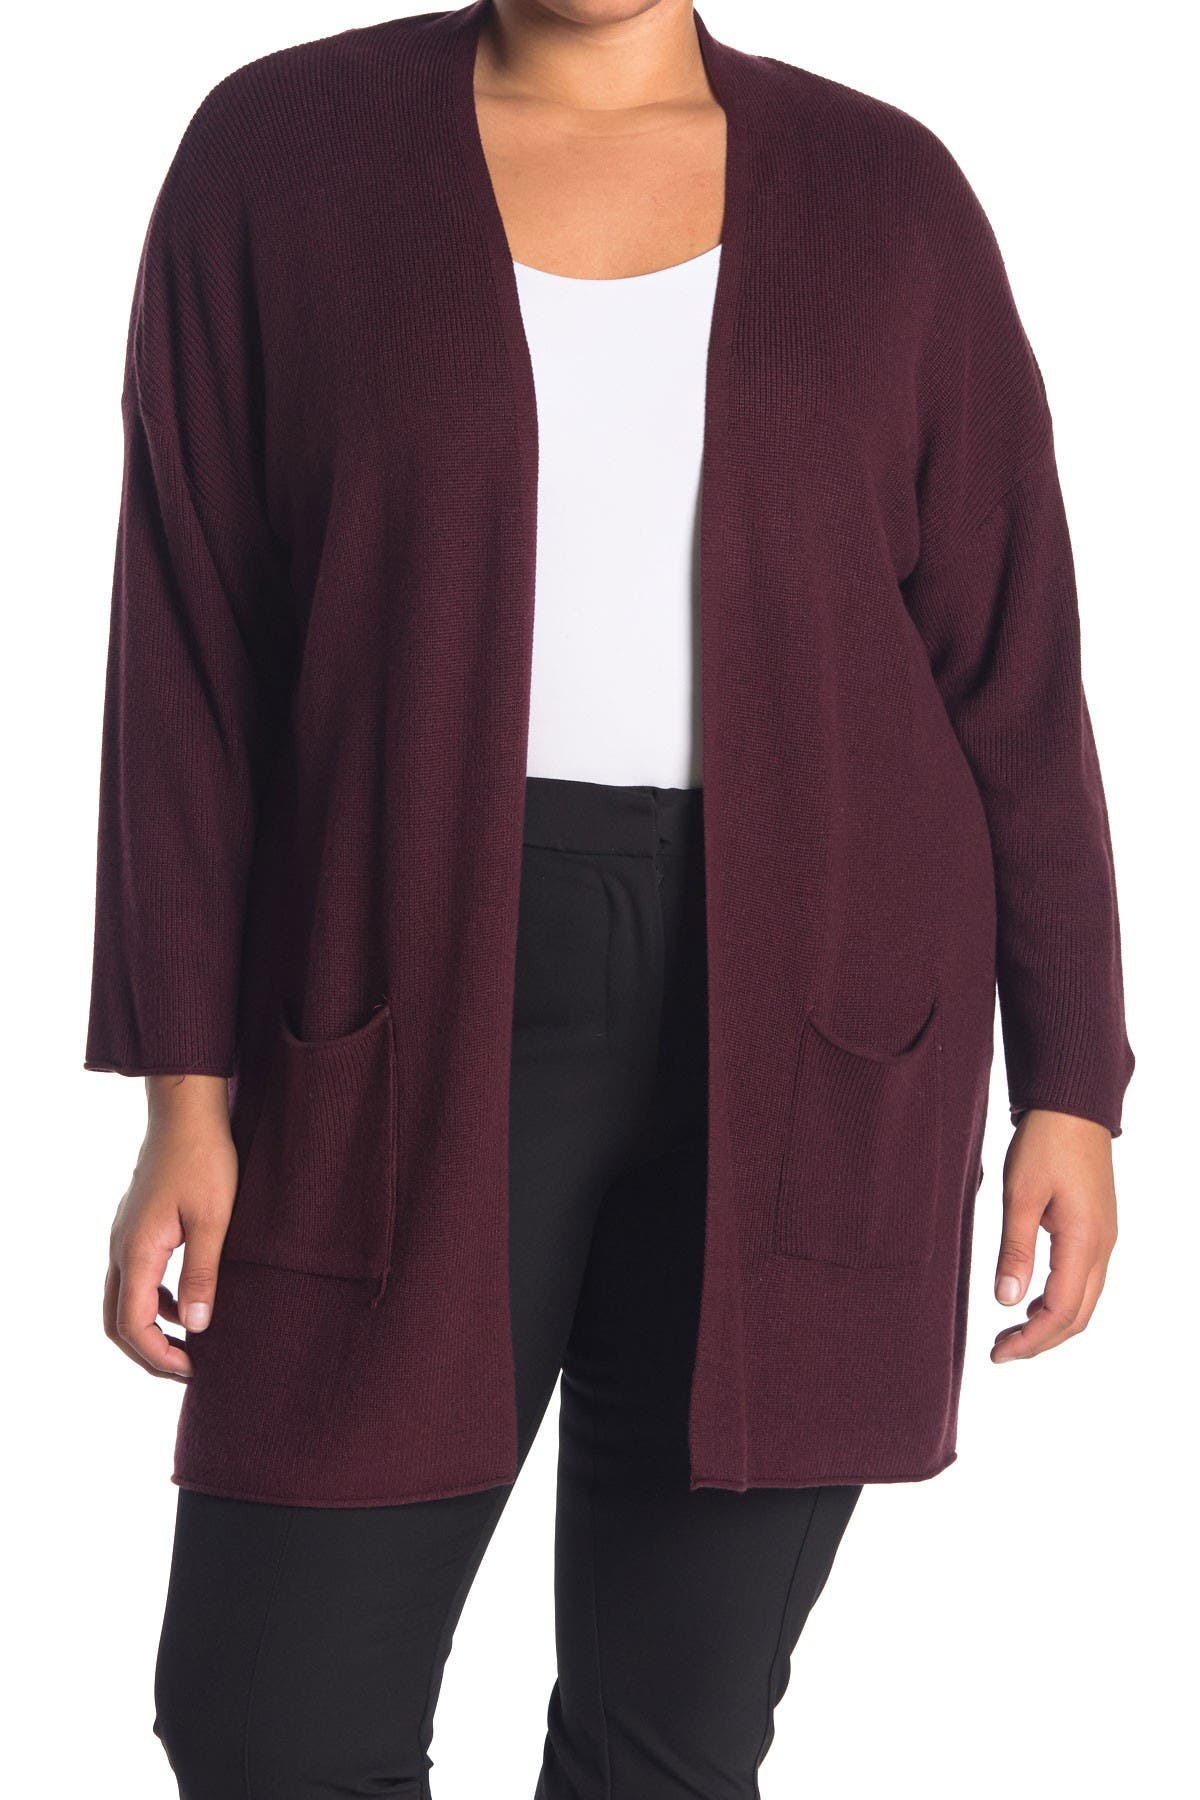 Image of T Tahari Pocket Cardigan